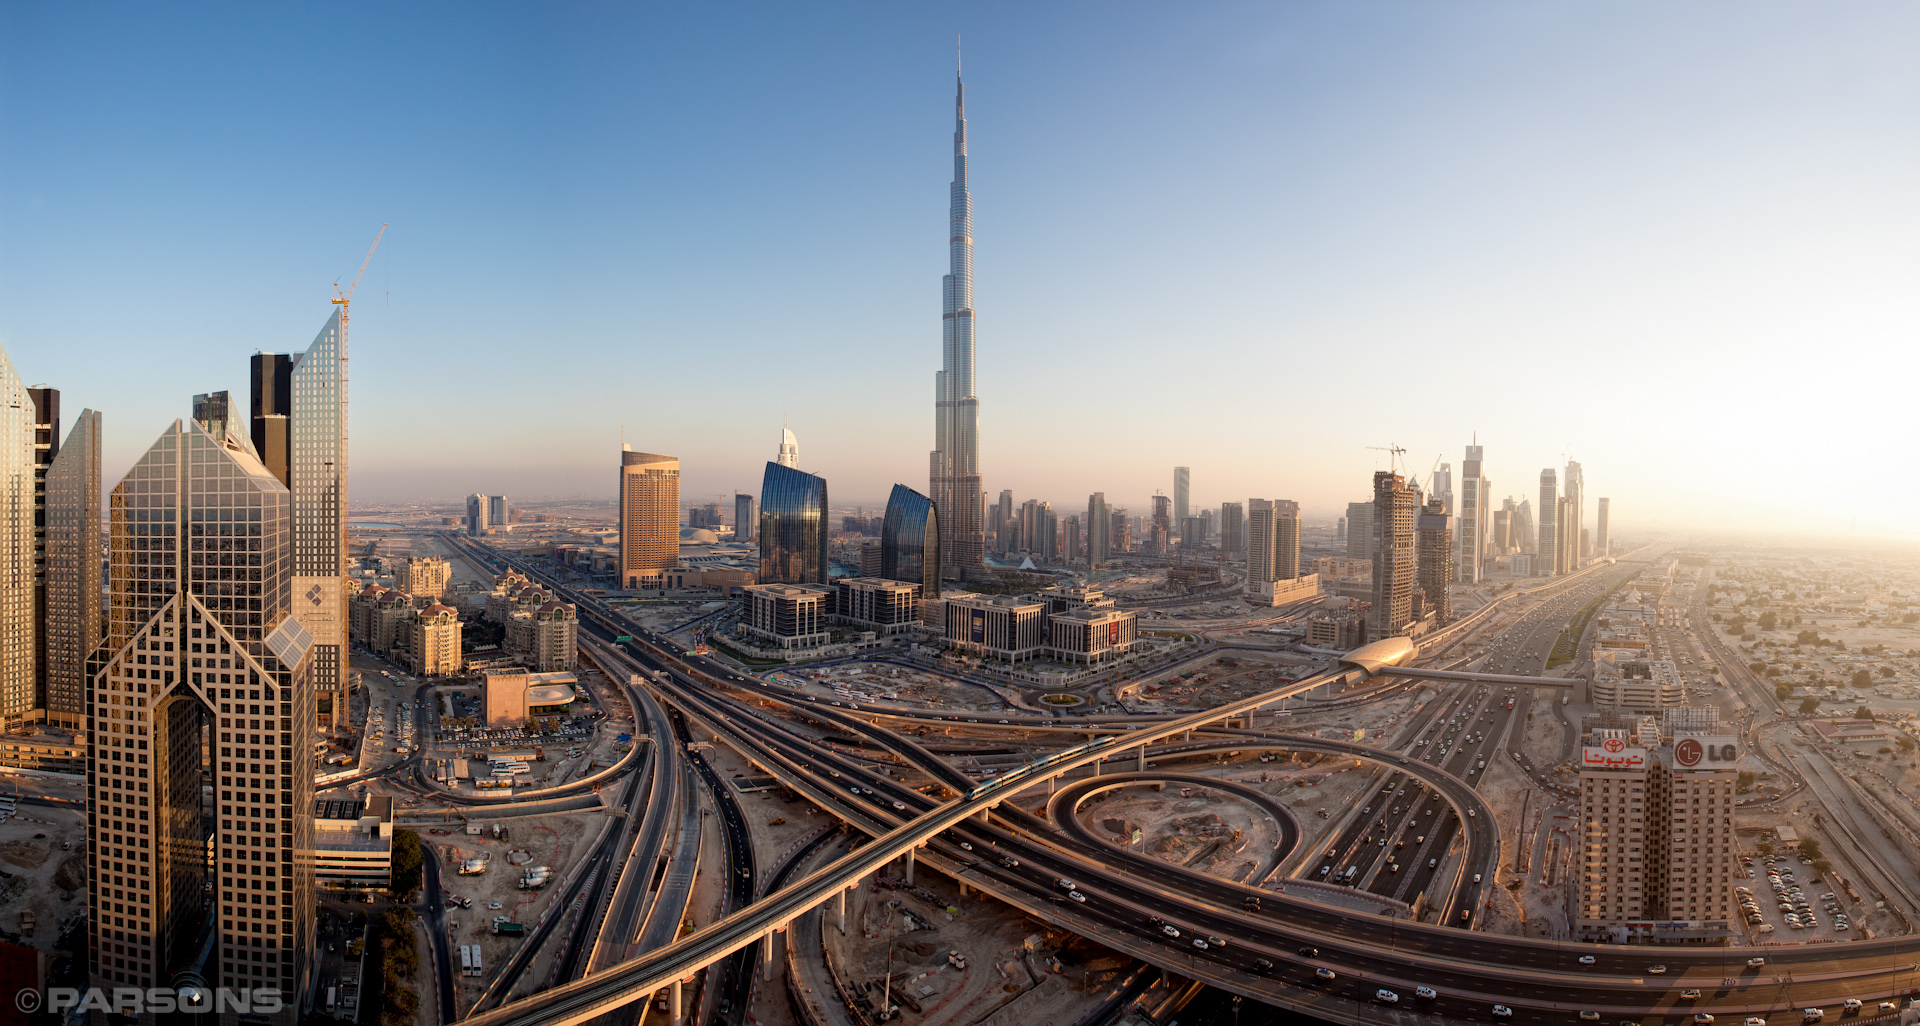 Civil-Engineering-Dubai-Metro-Skyline-Burj-Khalifa-UAE-Jason-Bax.JPG